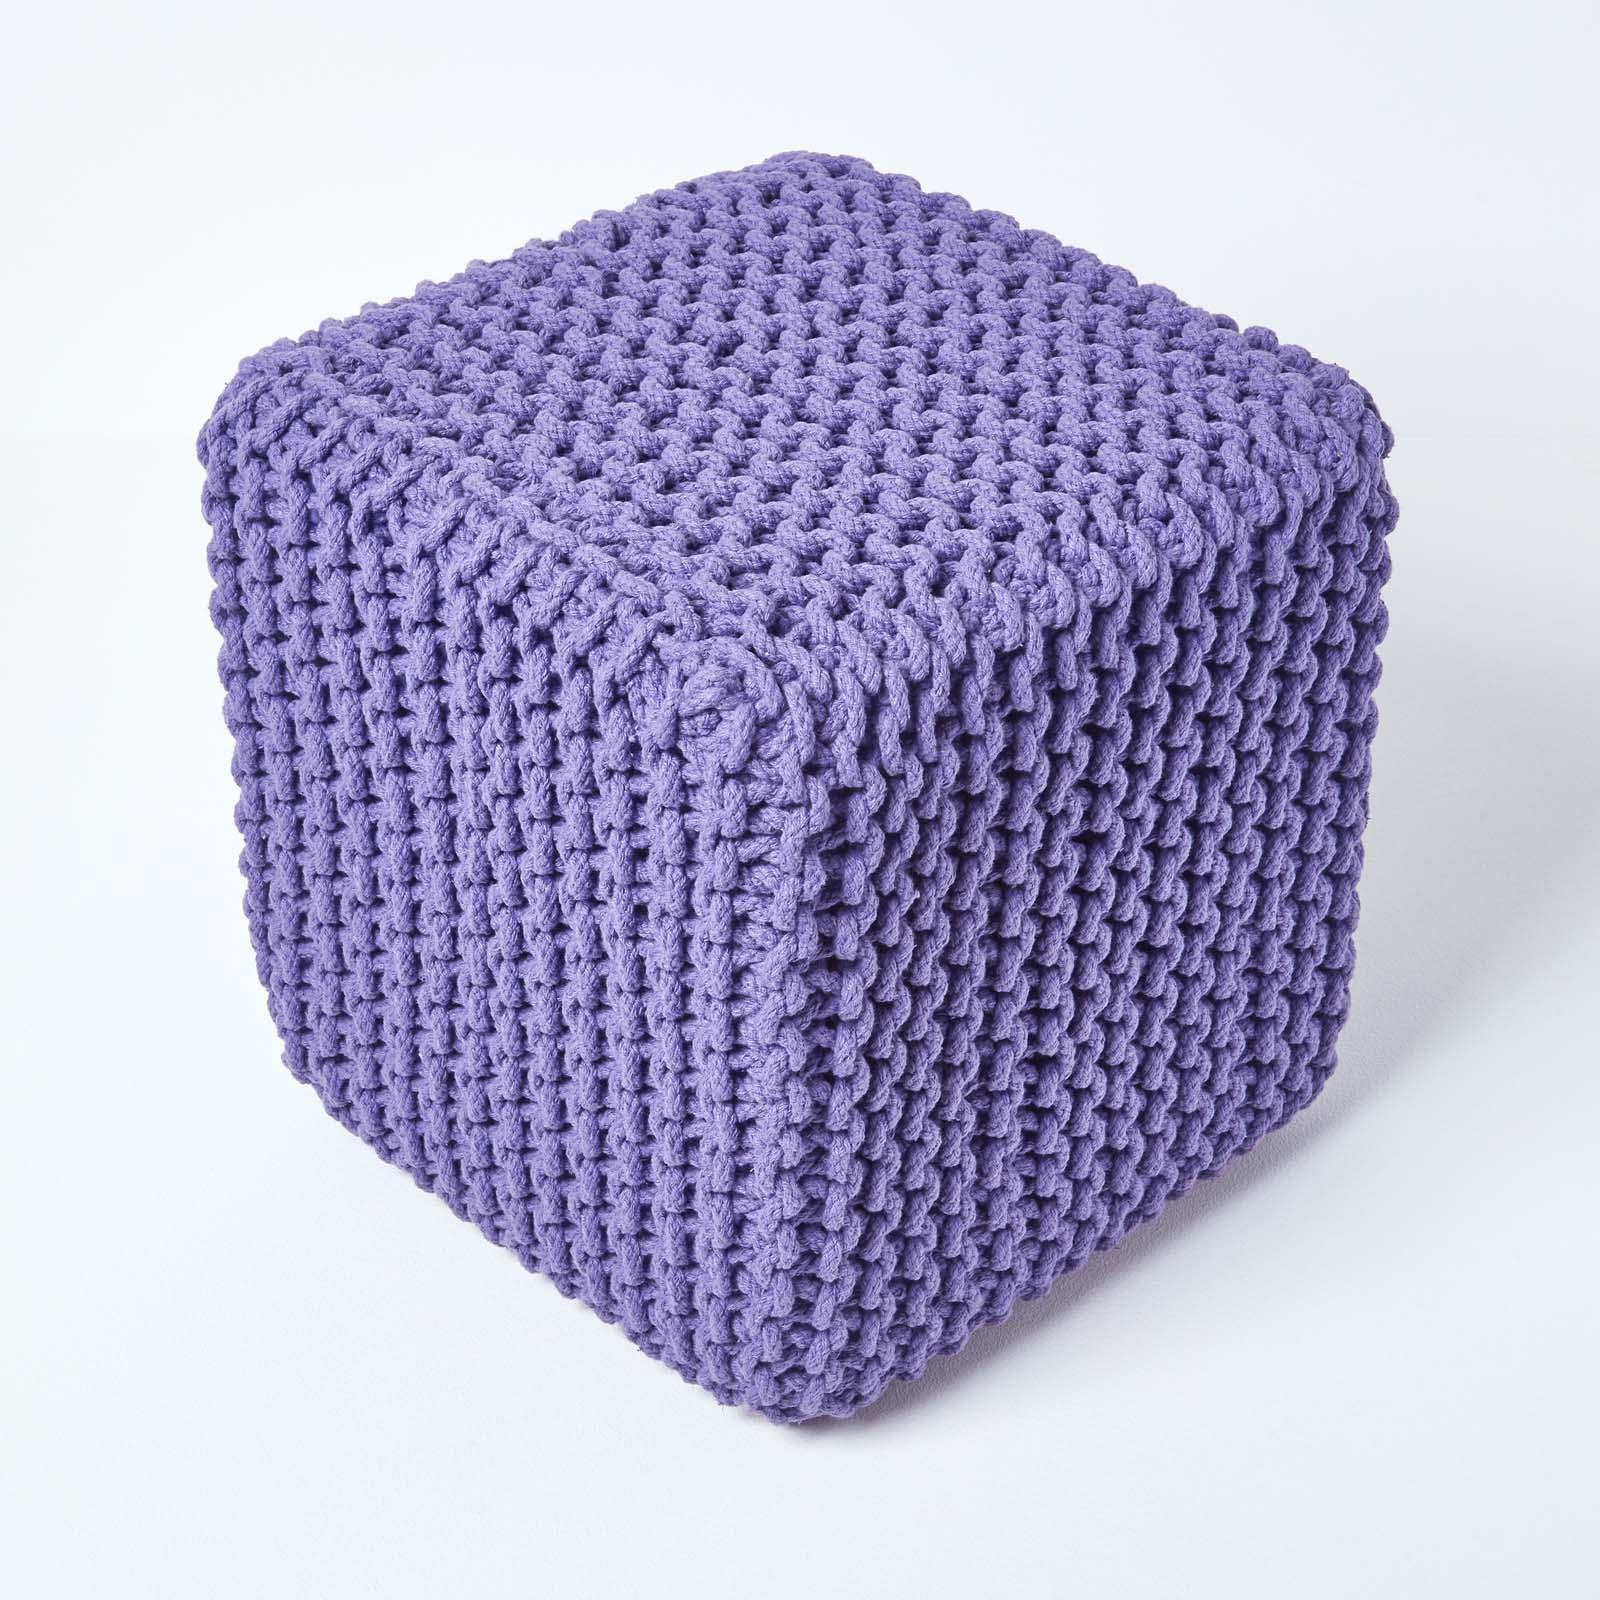 Hand-Knitted-100-Cotton-Pouffes-Round-Sphere-Or-Cube-Square-Chunky-Footstools thumbnail 166